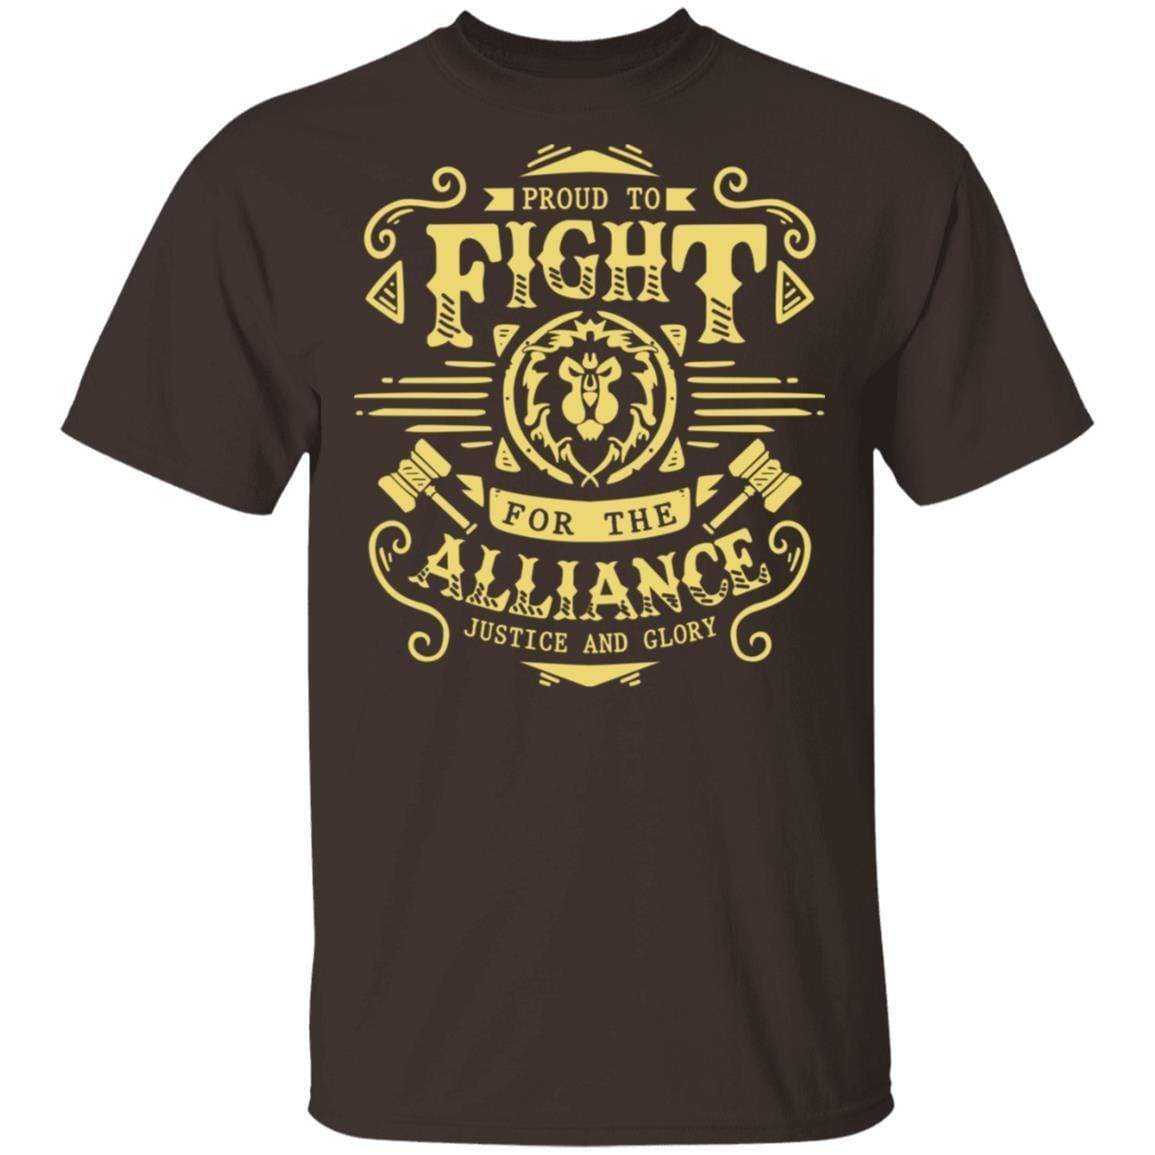 Proud To Fight For The Alliance Justice And Glory T-Shirts, Hoodies 1049-9956-88445022-48152 - Tee Ript